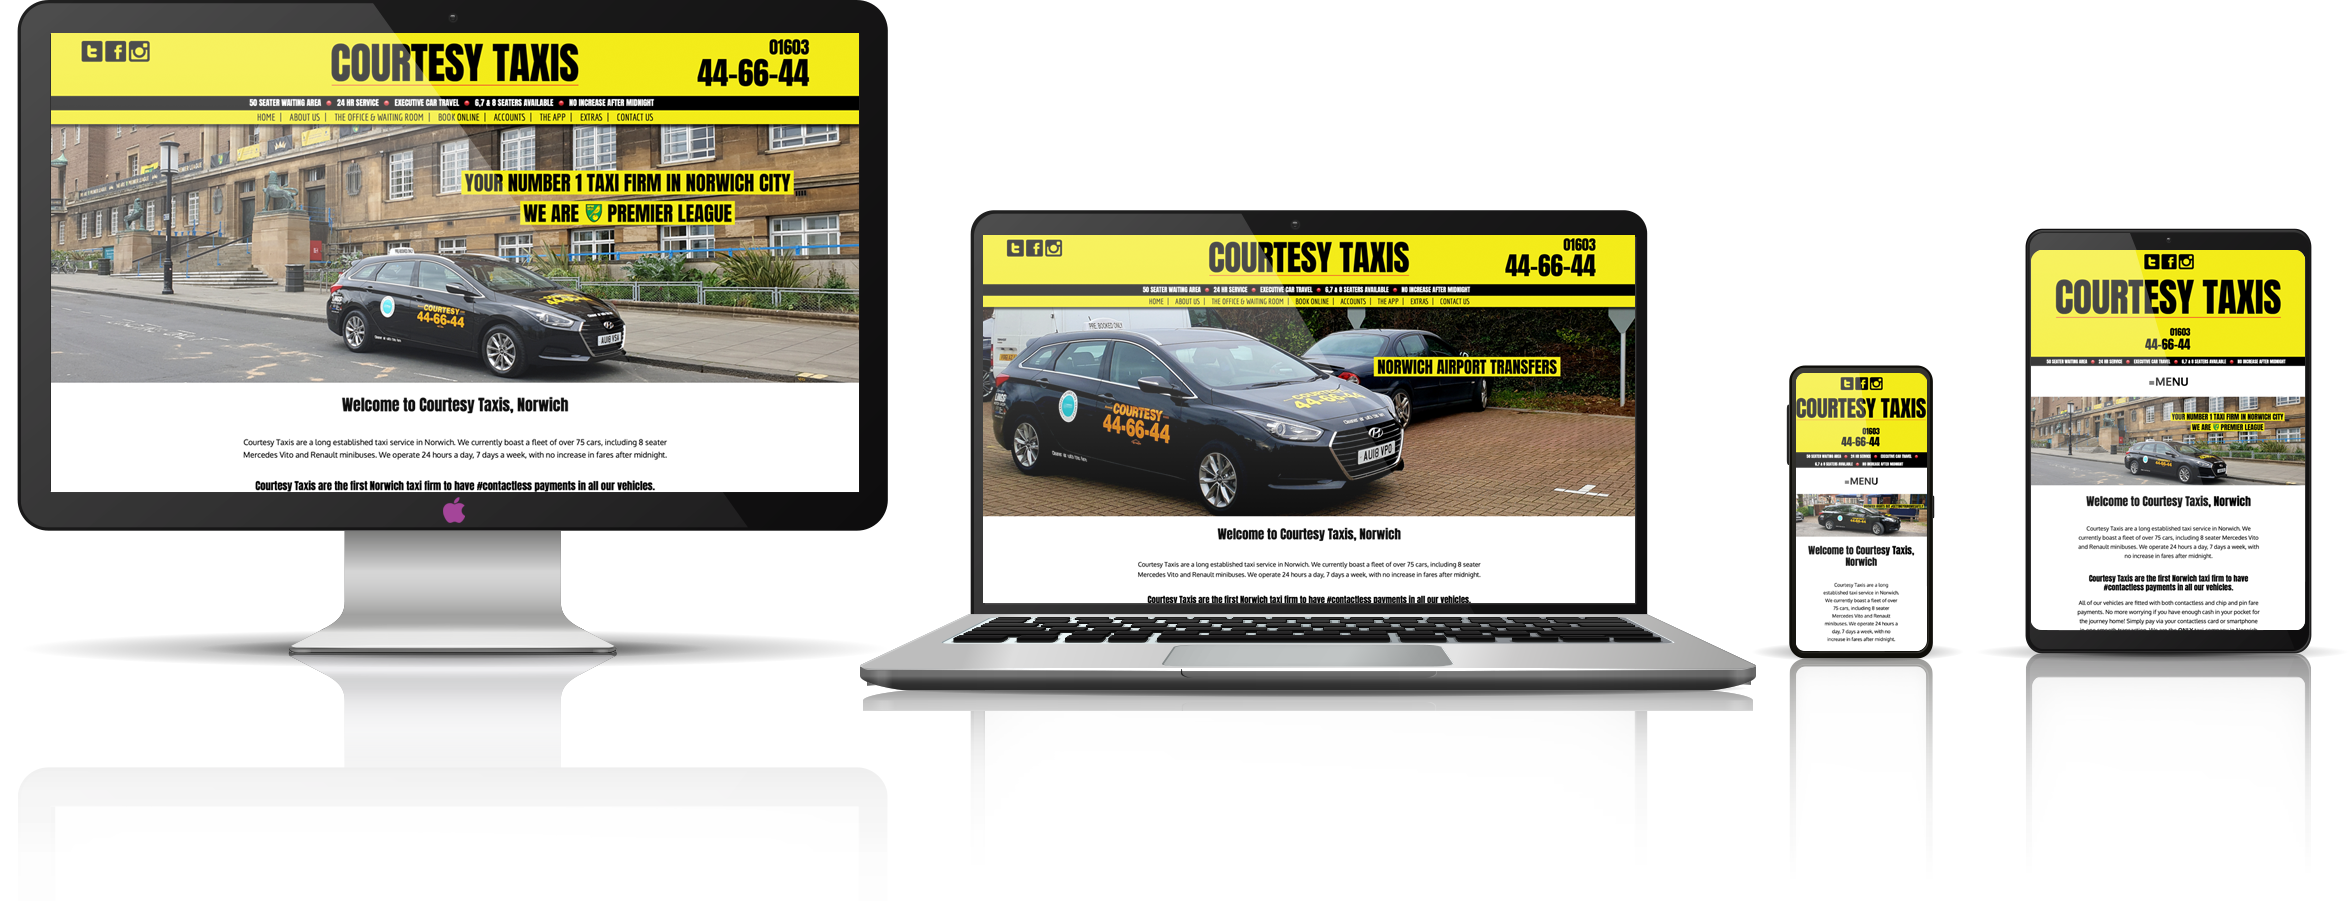 The Courtesy Taxis fully responsive mock-up images showing desktop, laptop, tablet, and mobile phone devices.